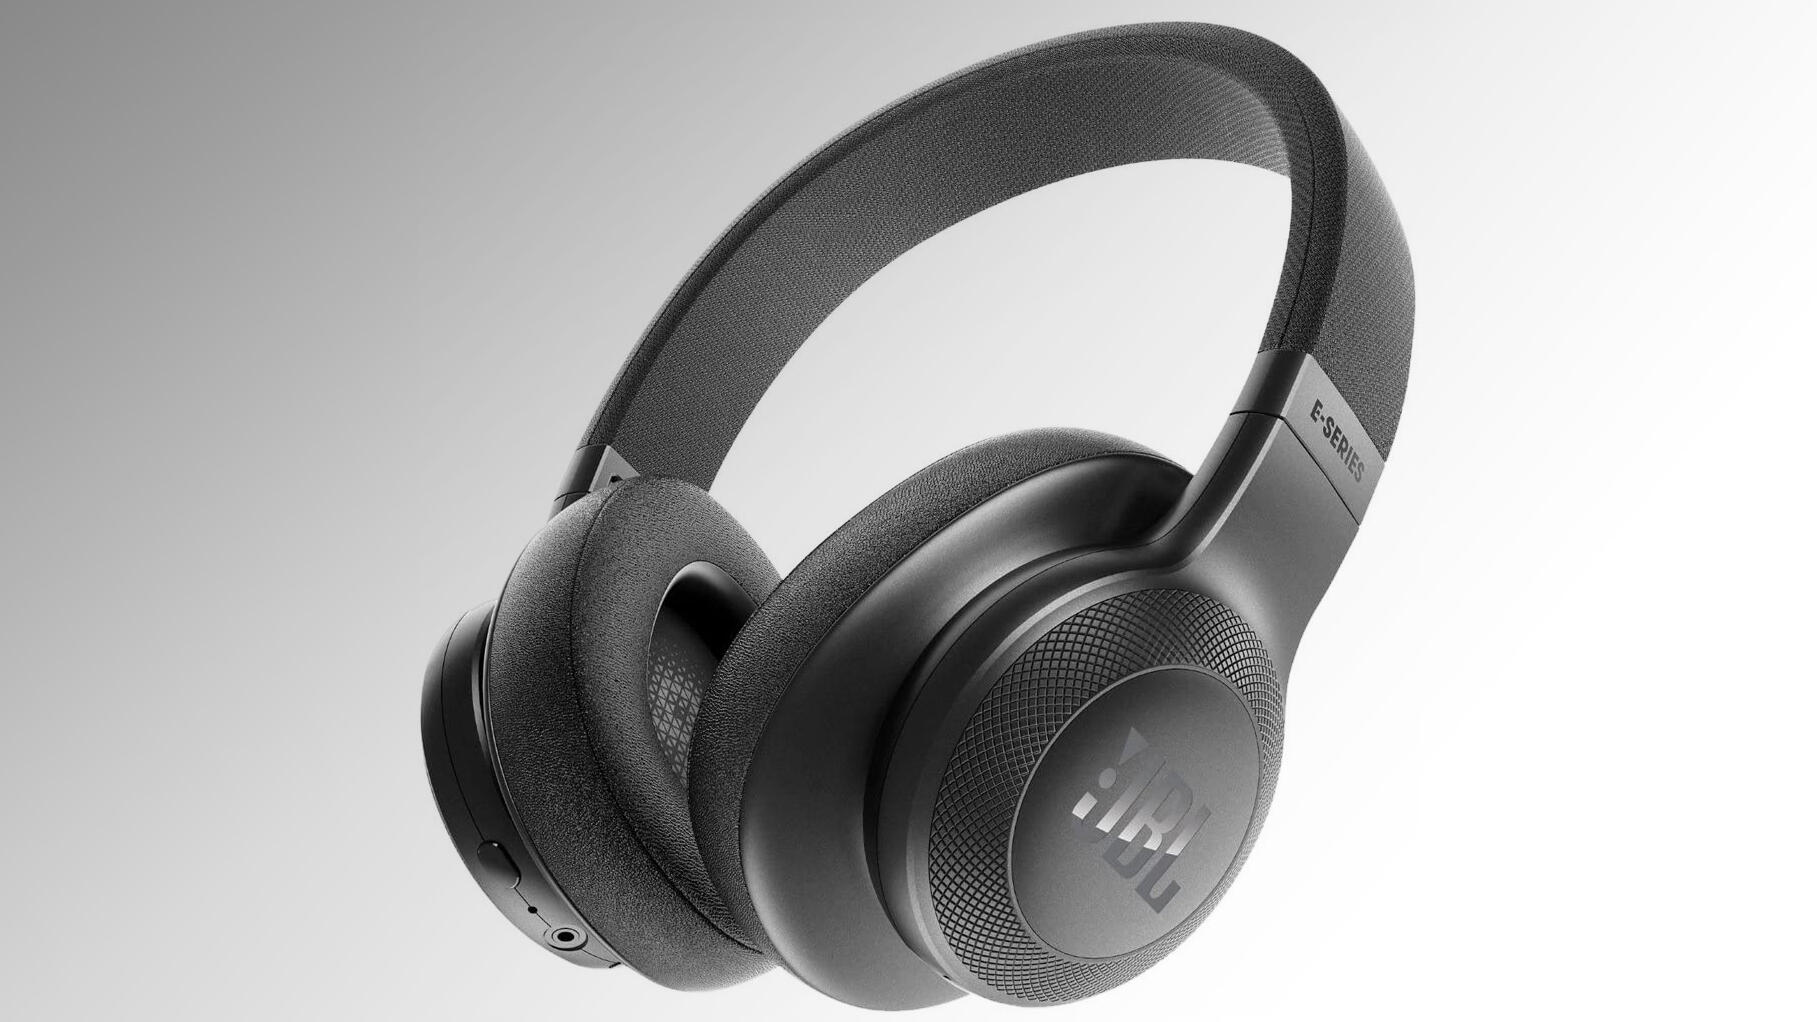 jbl-e55bt-over-ear-wireless-headphones